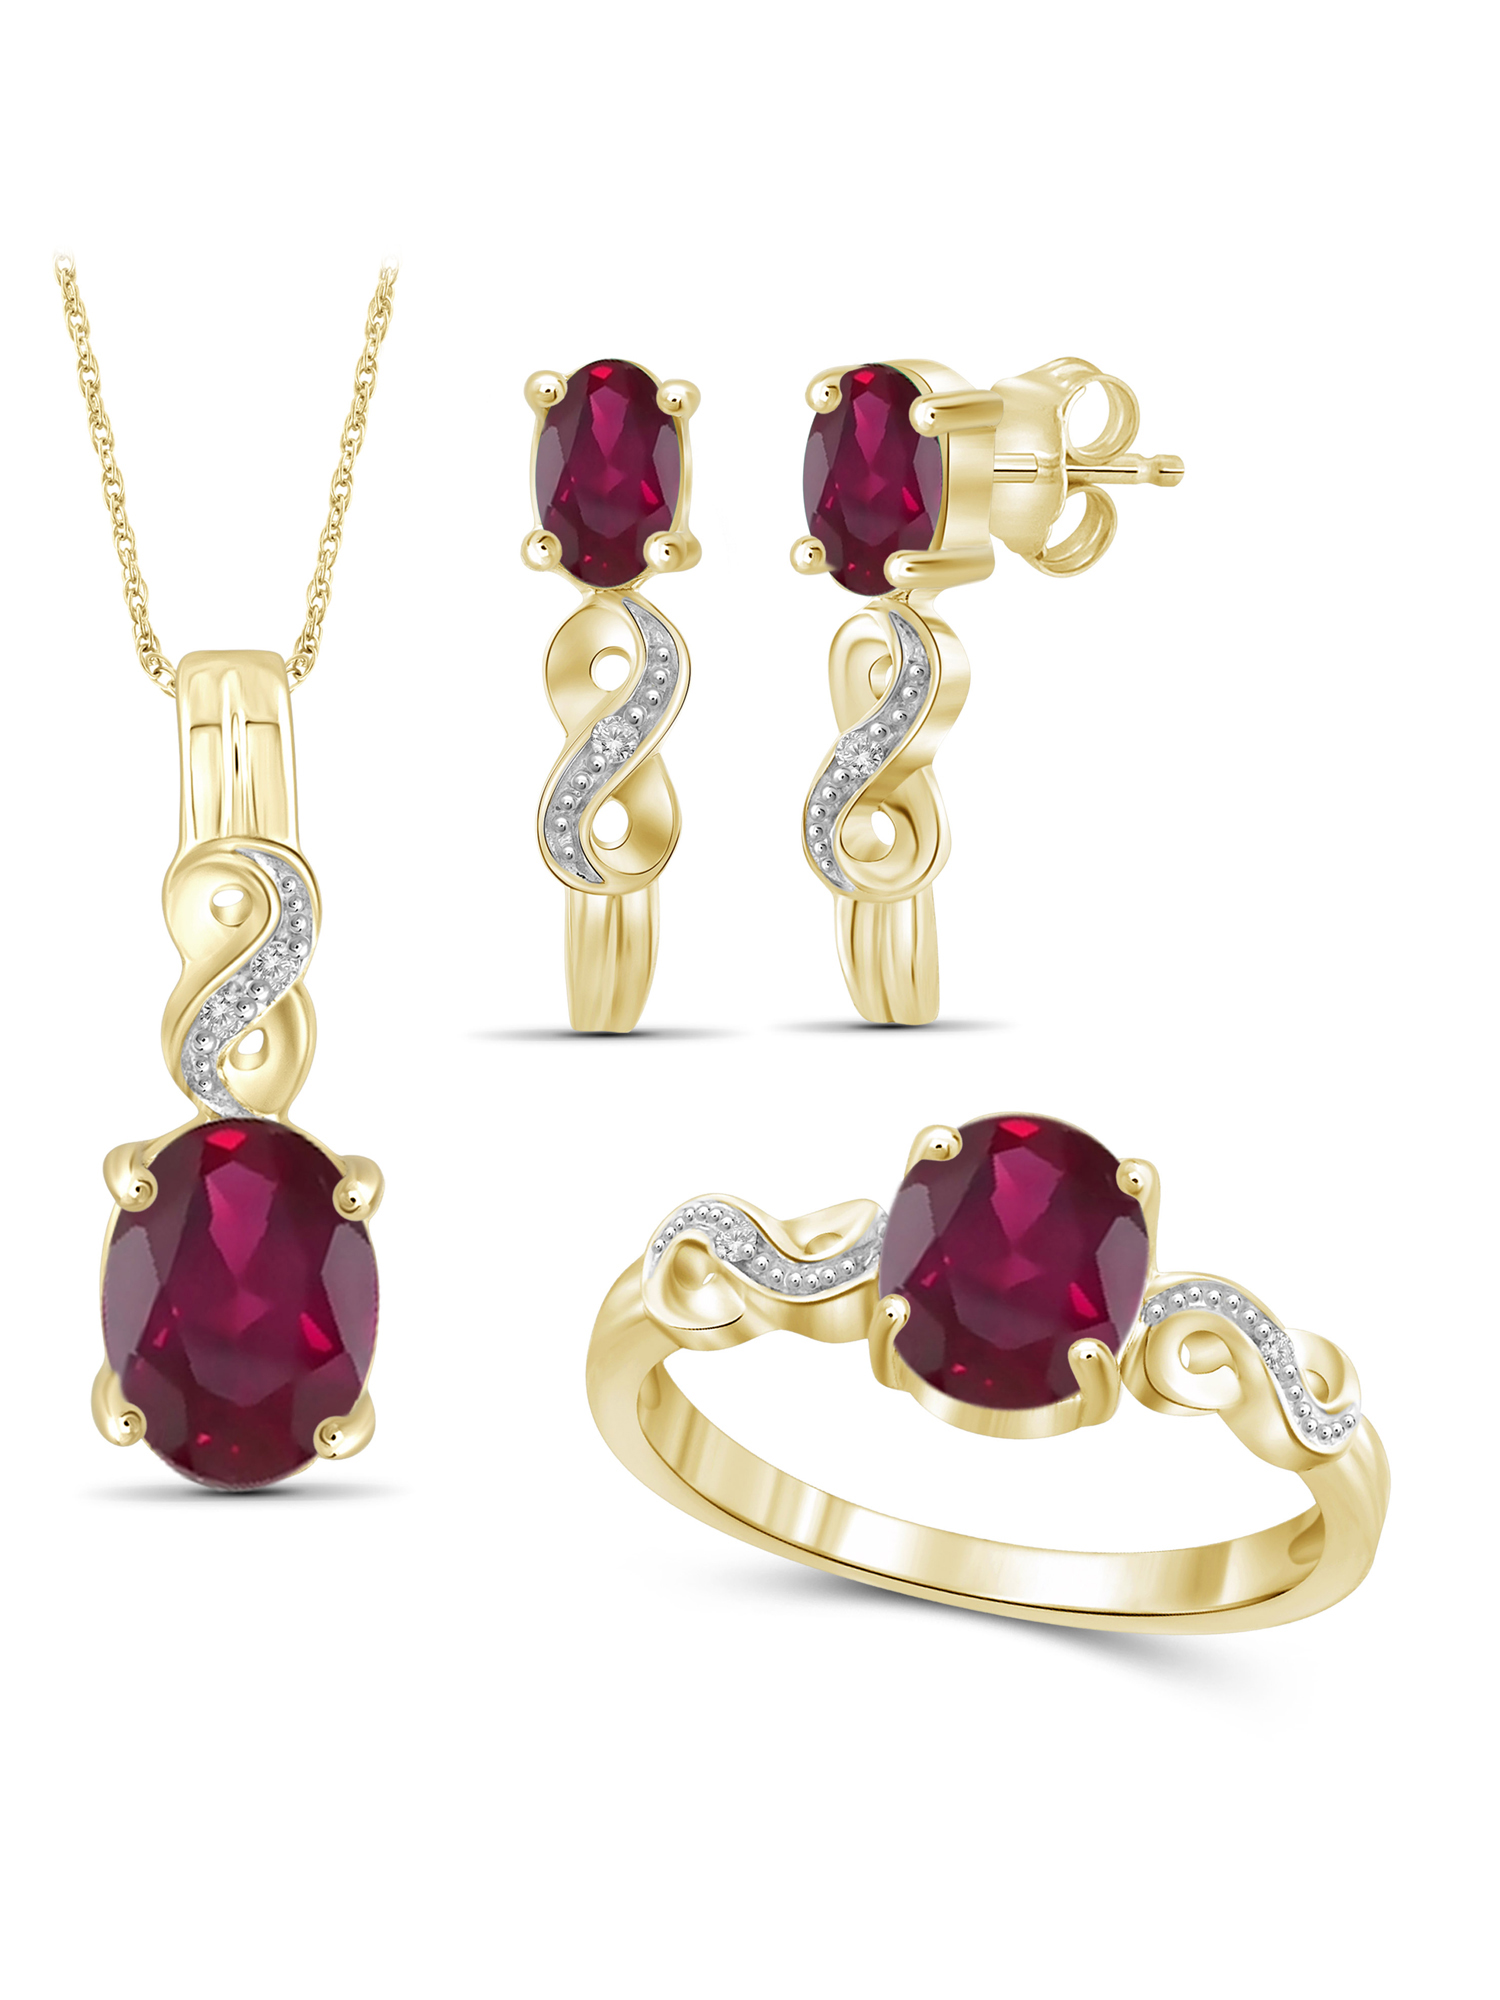 4 1/3 Carat T.G.W. Ruby And White Diamond Accent 14K Gold over Silver 3-Piece Jewelry set